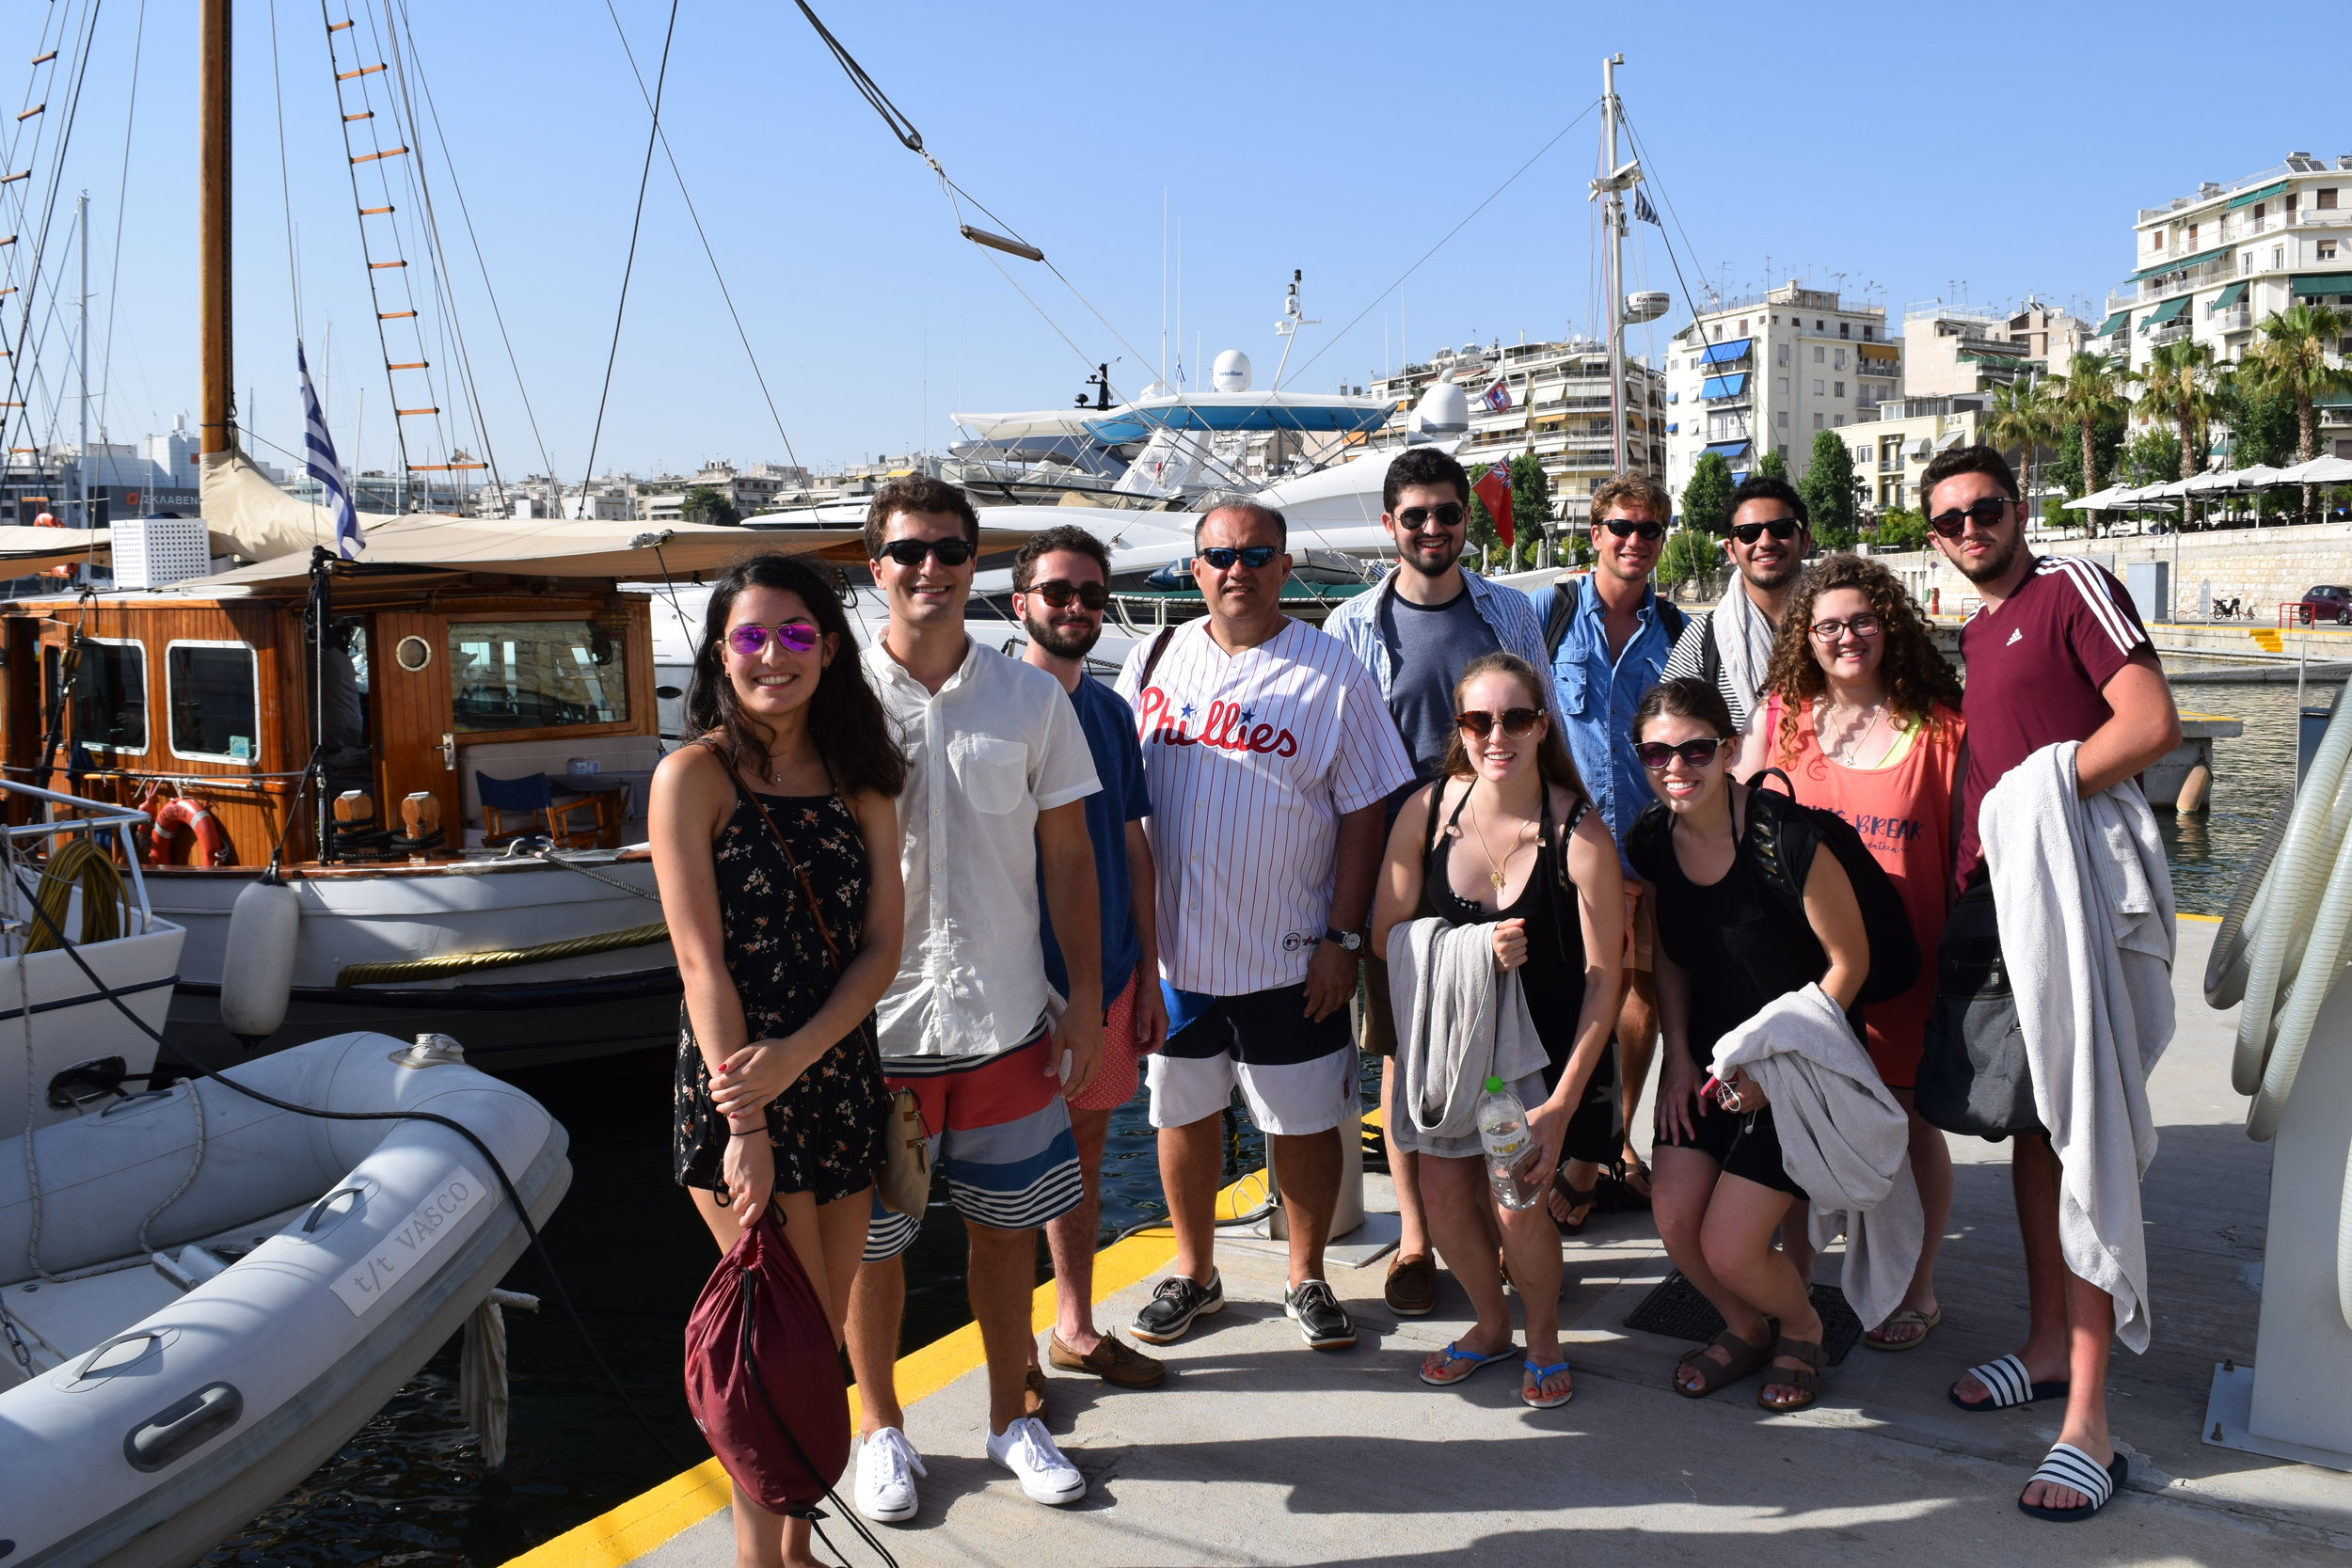 All day boat outing courtesy of Katerina Pangopoulos.